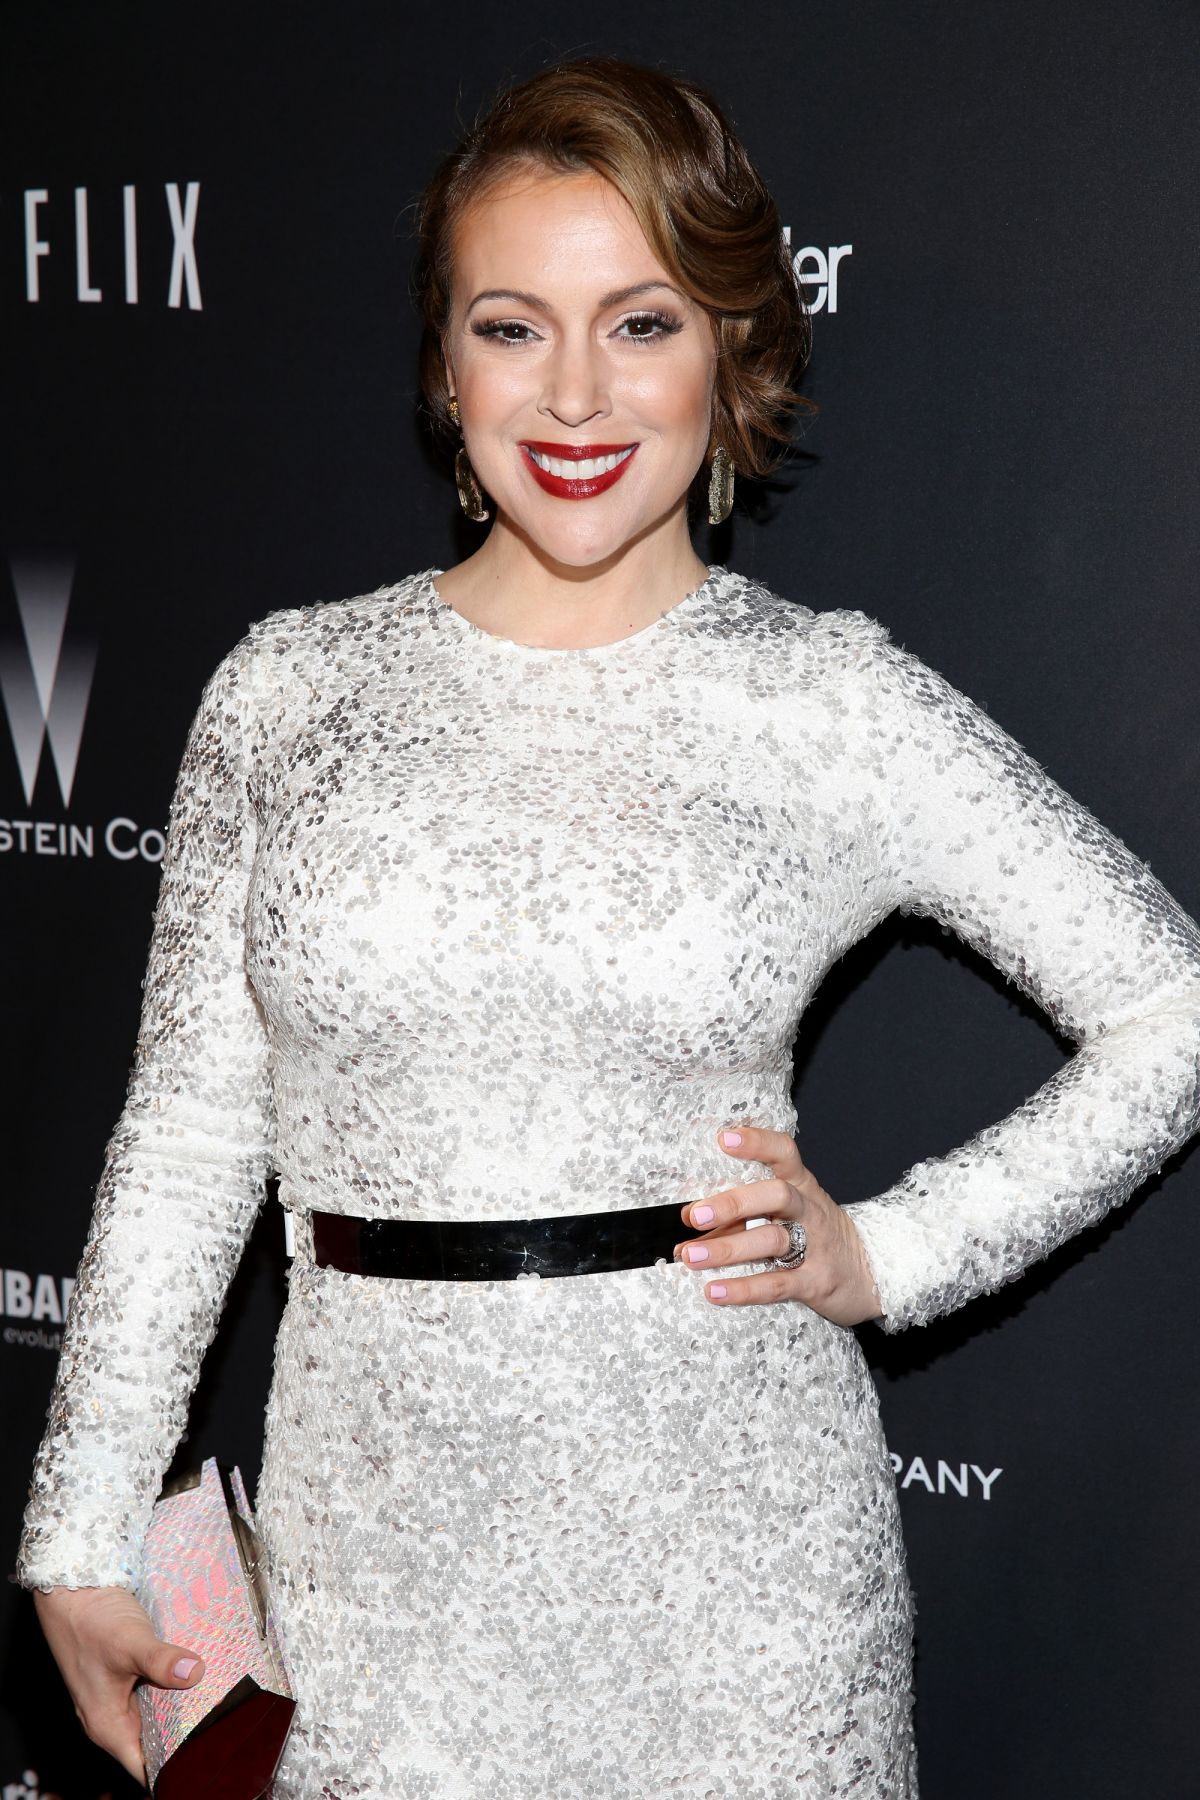 ALYSSA MILANO at The Weinstein Company and Netflix Golden Globe After Party